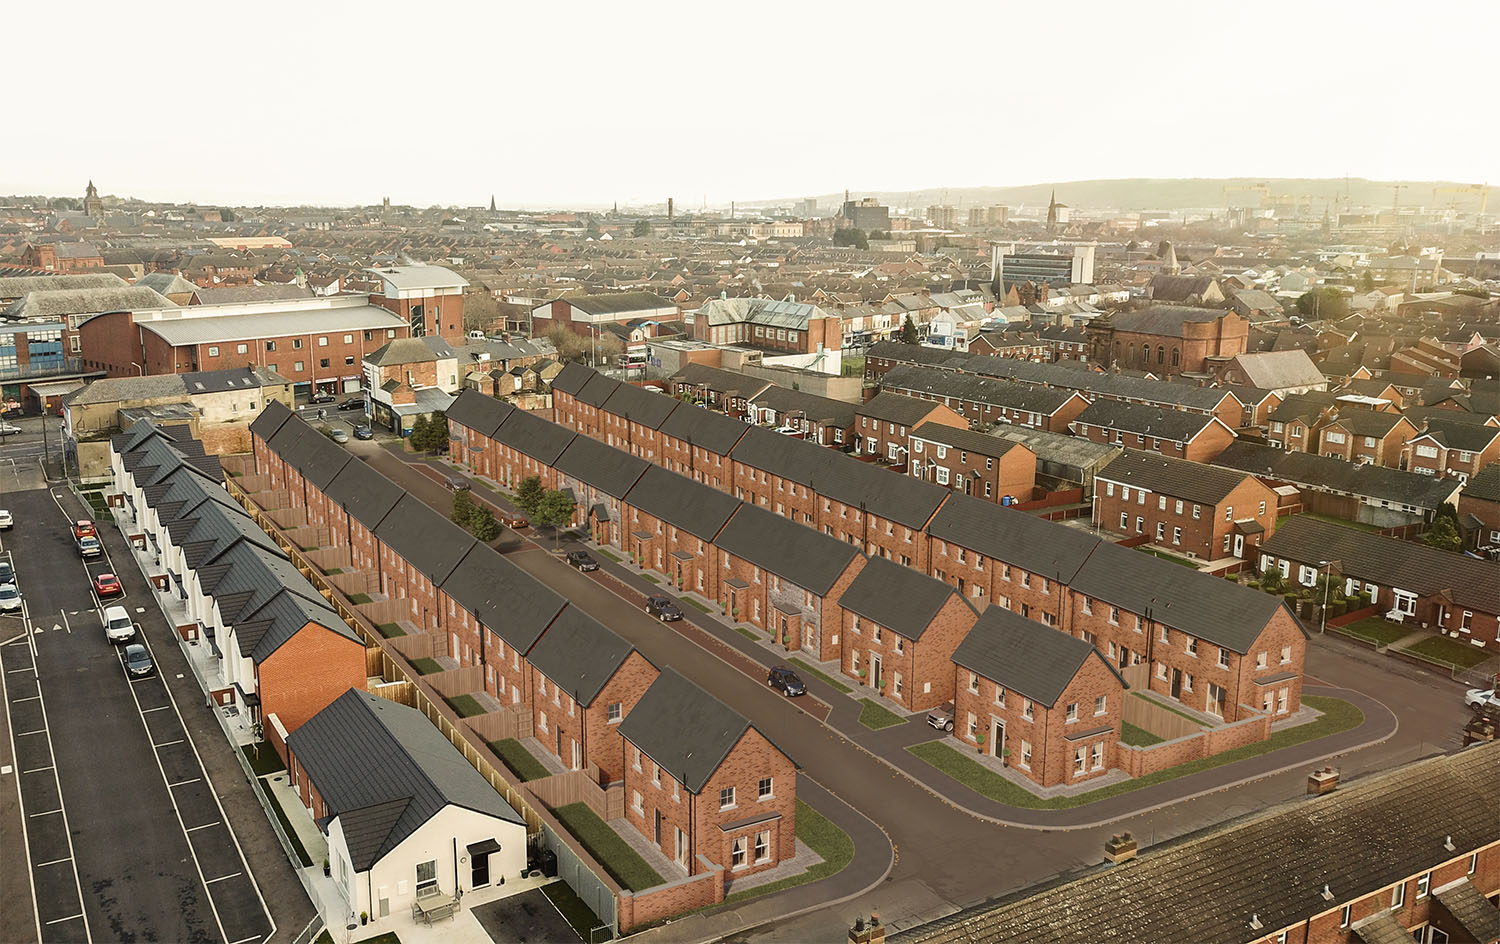 thirty-eight-north-belfast-after-dron-cgi-francos-and-costa-architectural-visualisation-agency